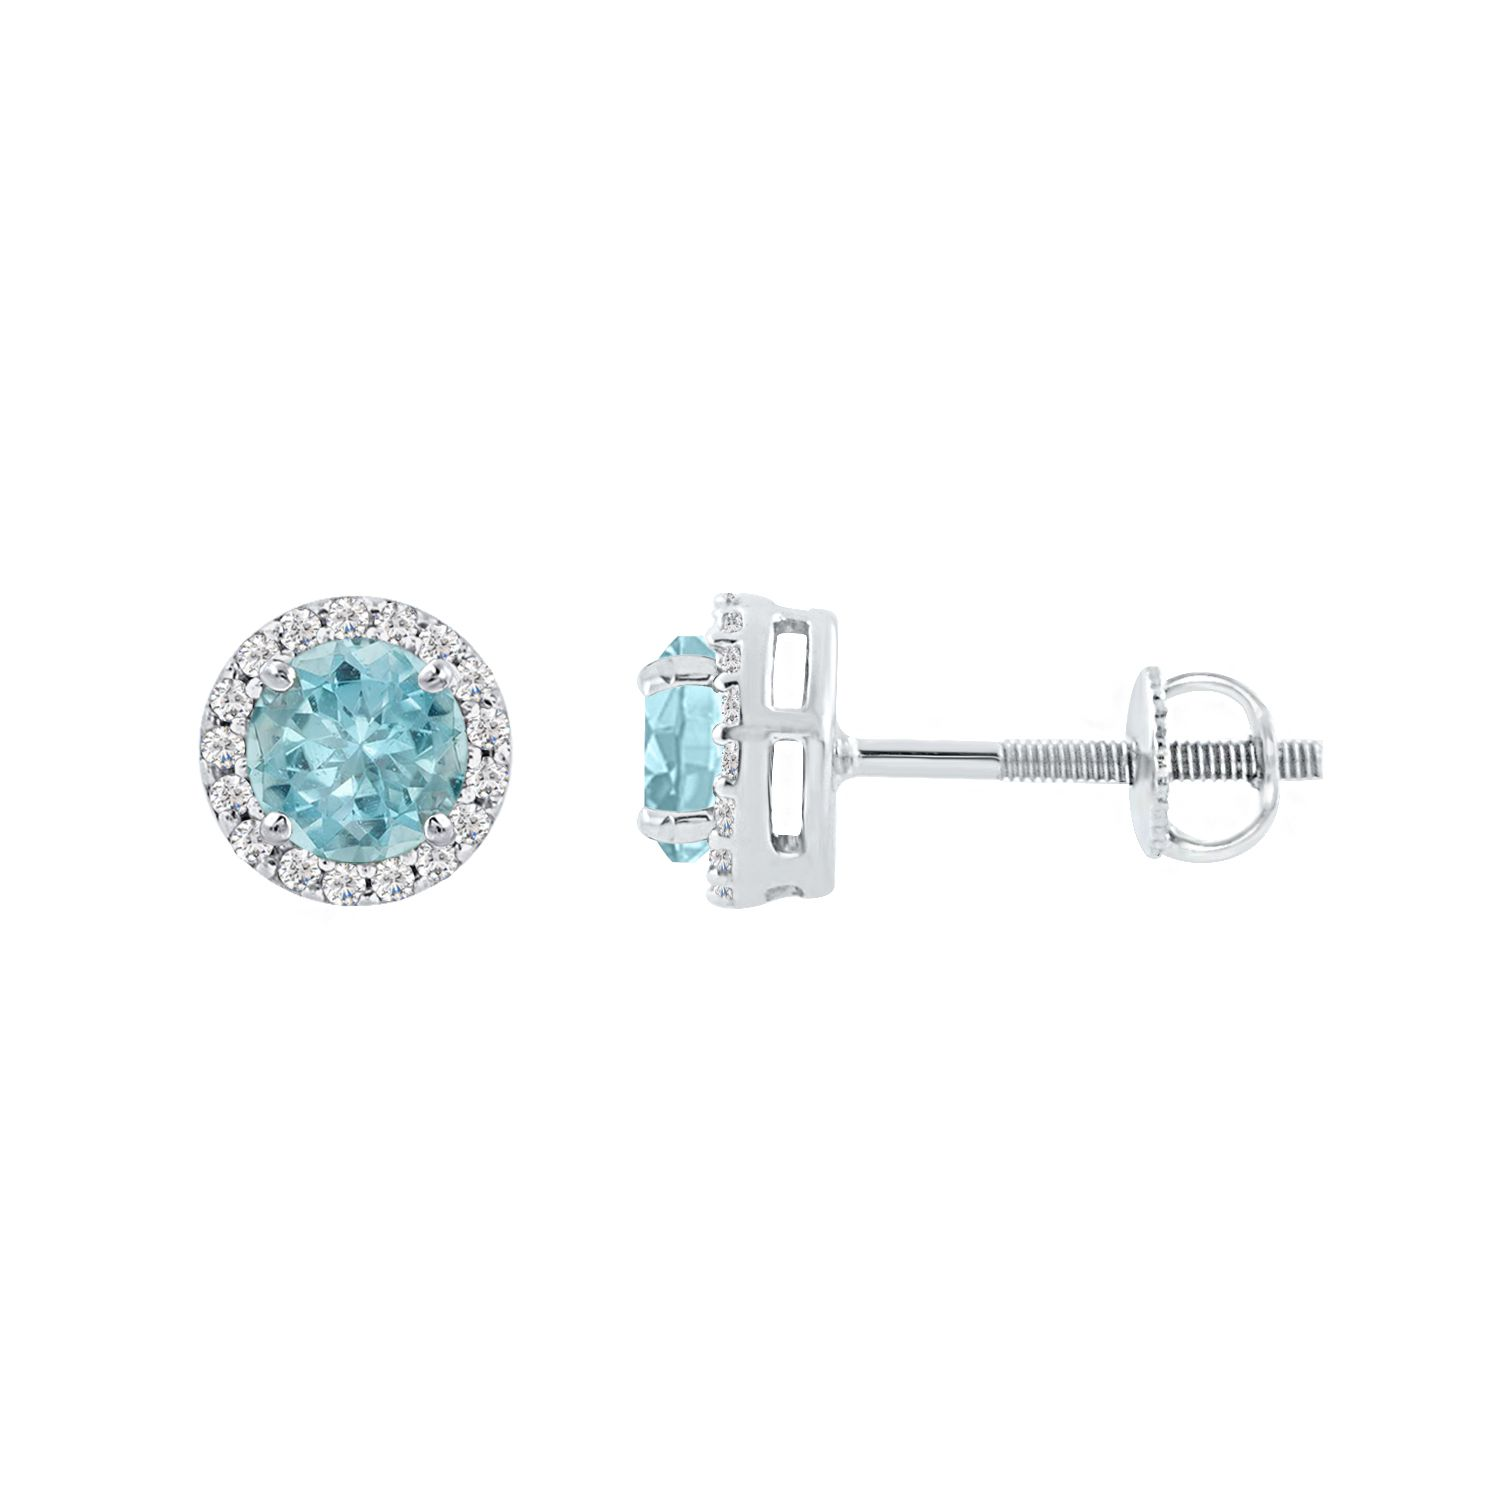 Silver Dew Earrings For Women In Pure Silver Round Shape Aquamarine Colorstone CZ Diamond Rhodium Plating (7mm)